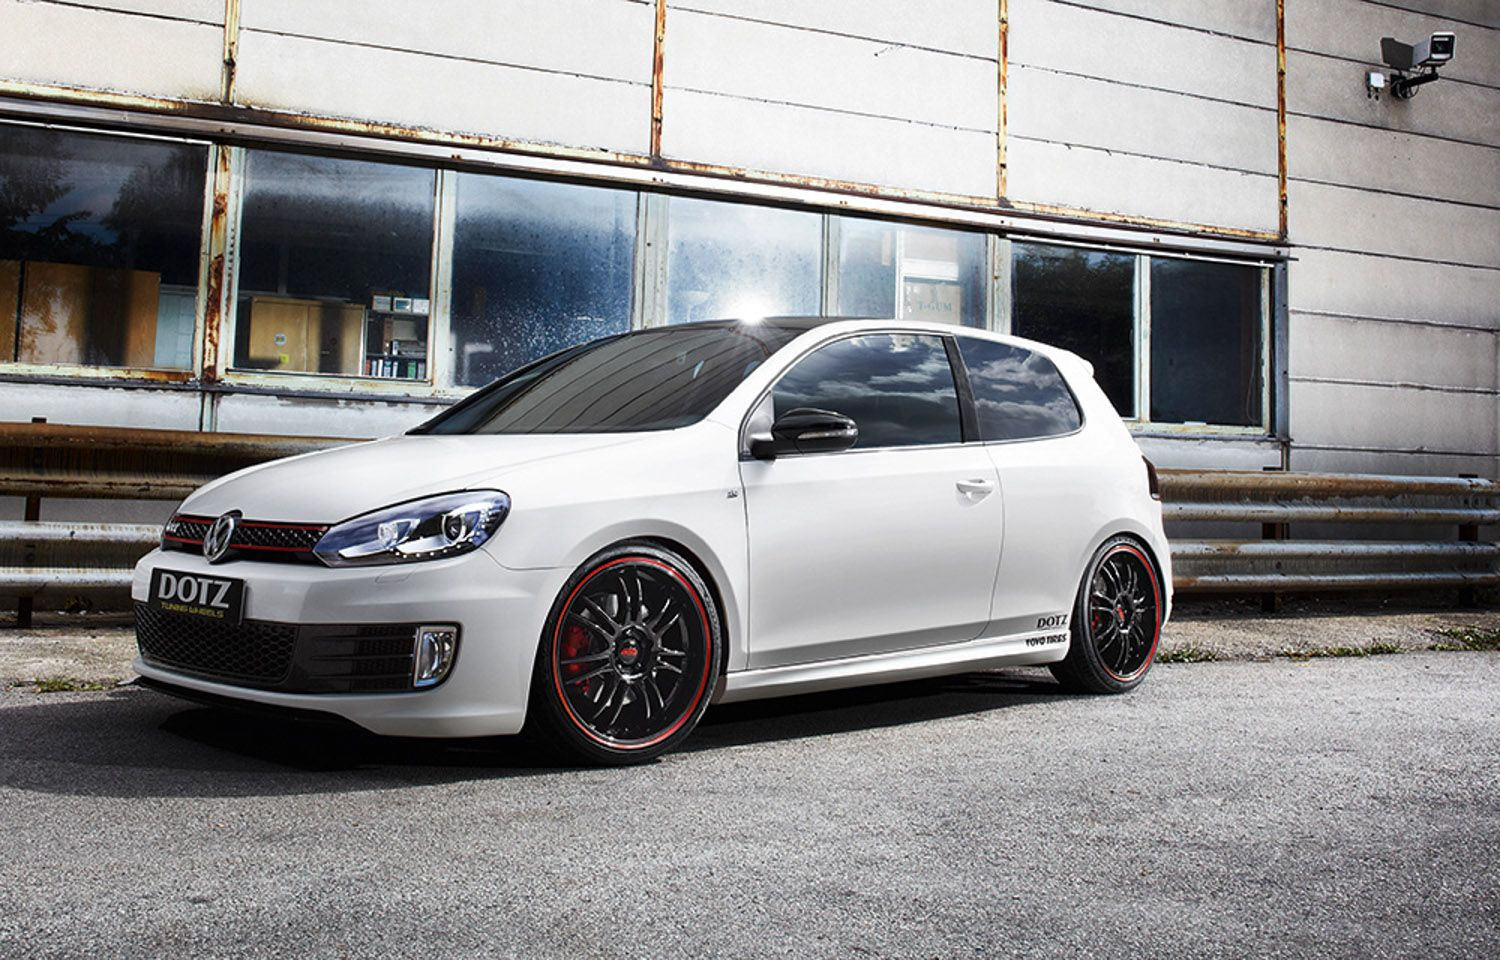 vw golf gti edition 35 on dotz shift pinstripe red car car wallpapers red. Black Bedroom Furniture Sets. Home Design Ideas